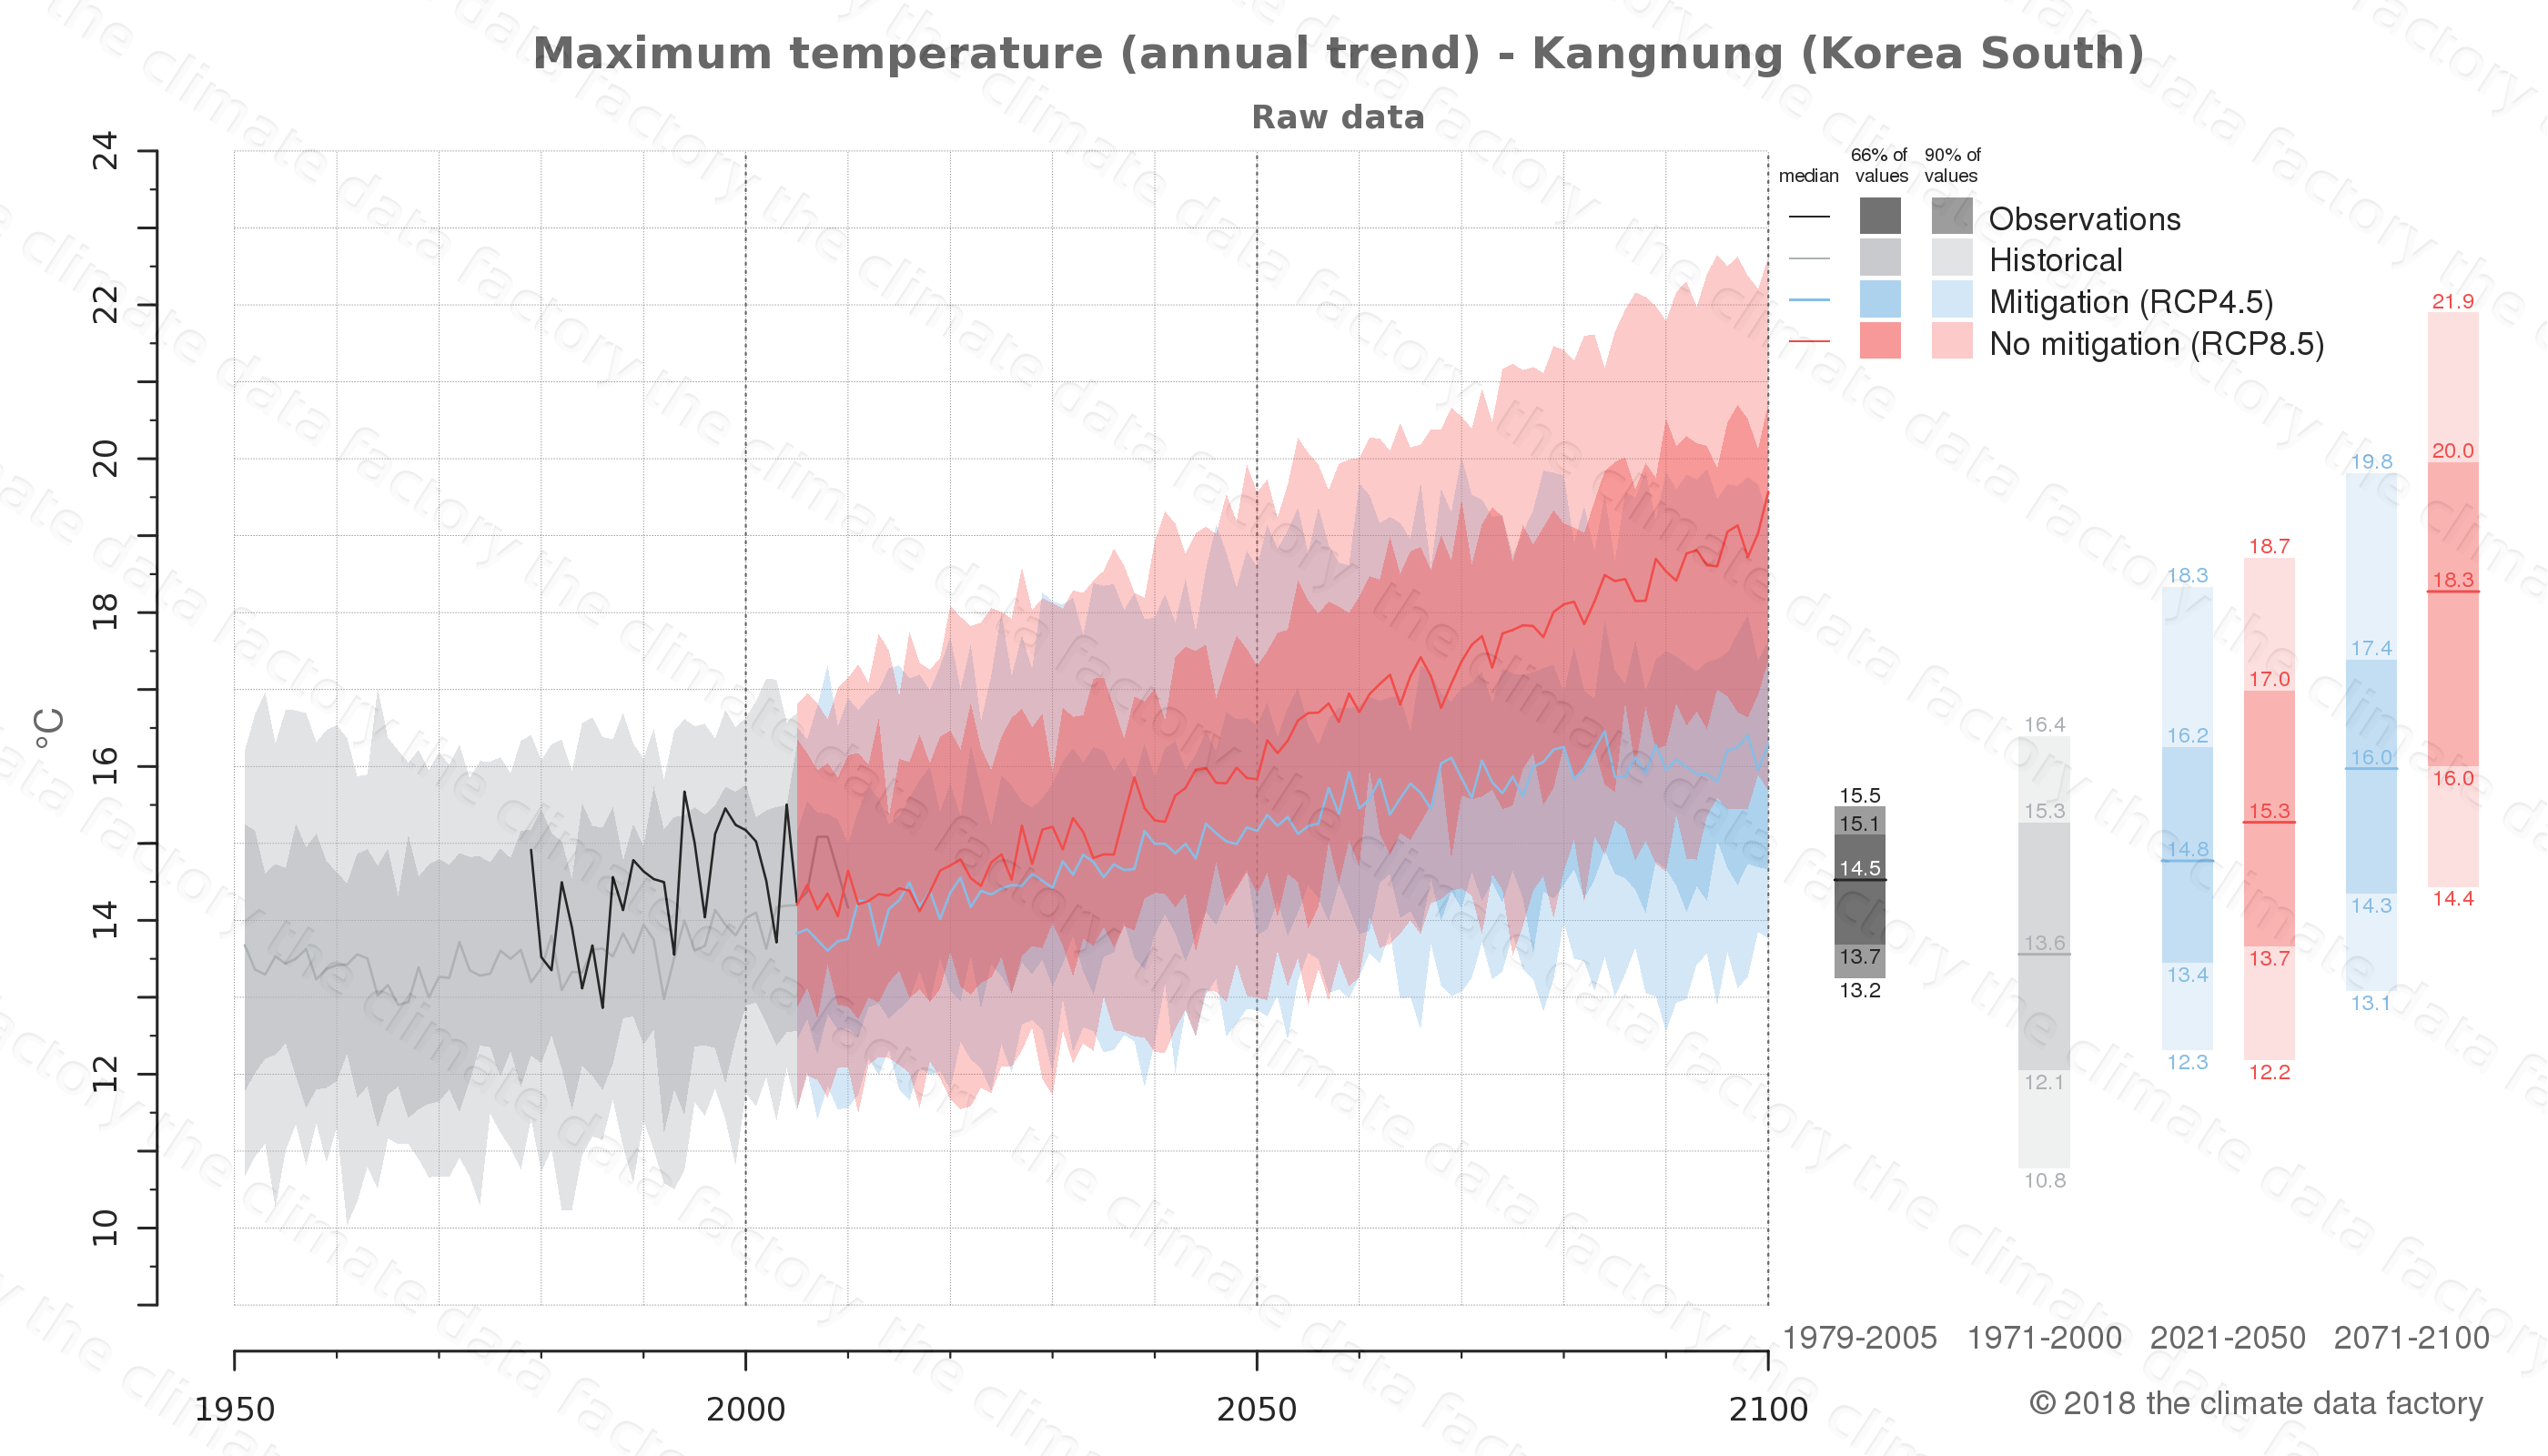 climate change data policy adaptation climate graph city data maximum-temperature kangnung south korea